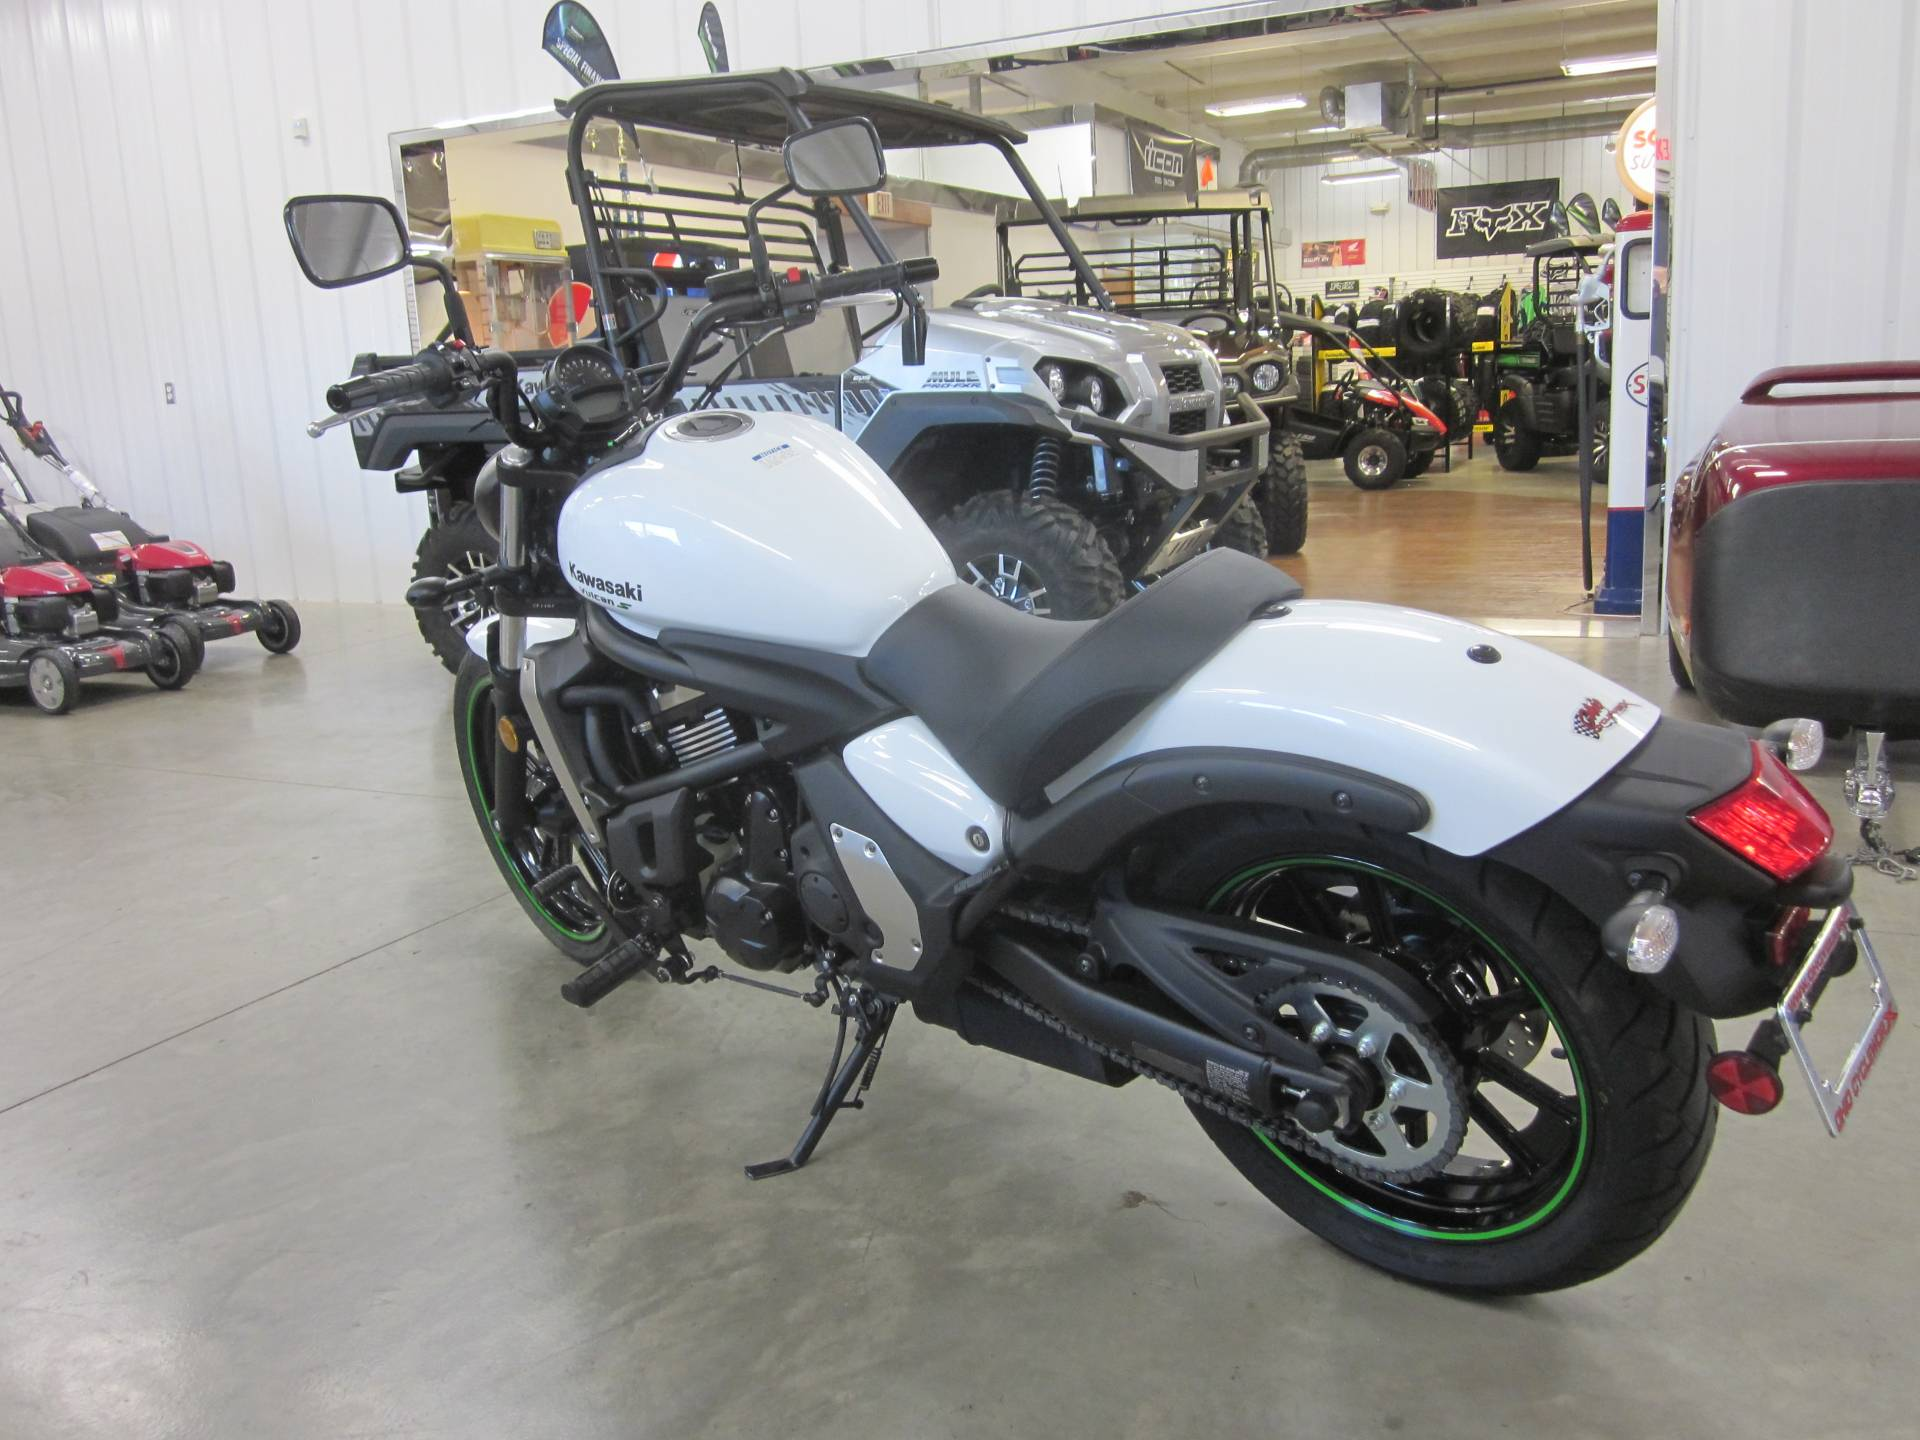 2015 Kawasaki Vulcan S in Lima, Ohio - Photo 6